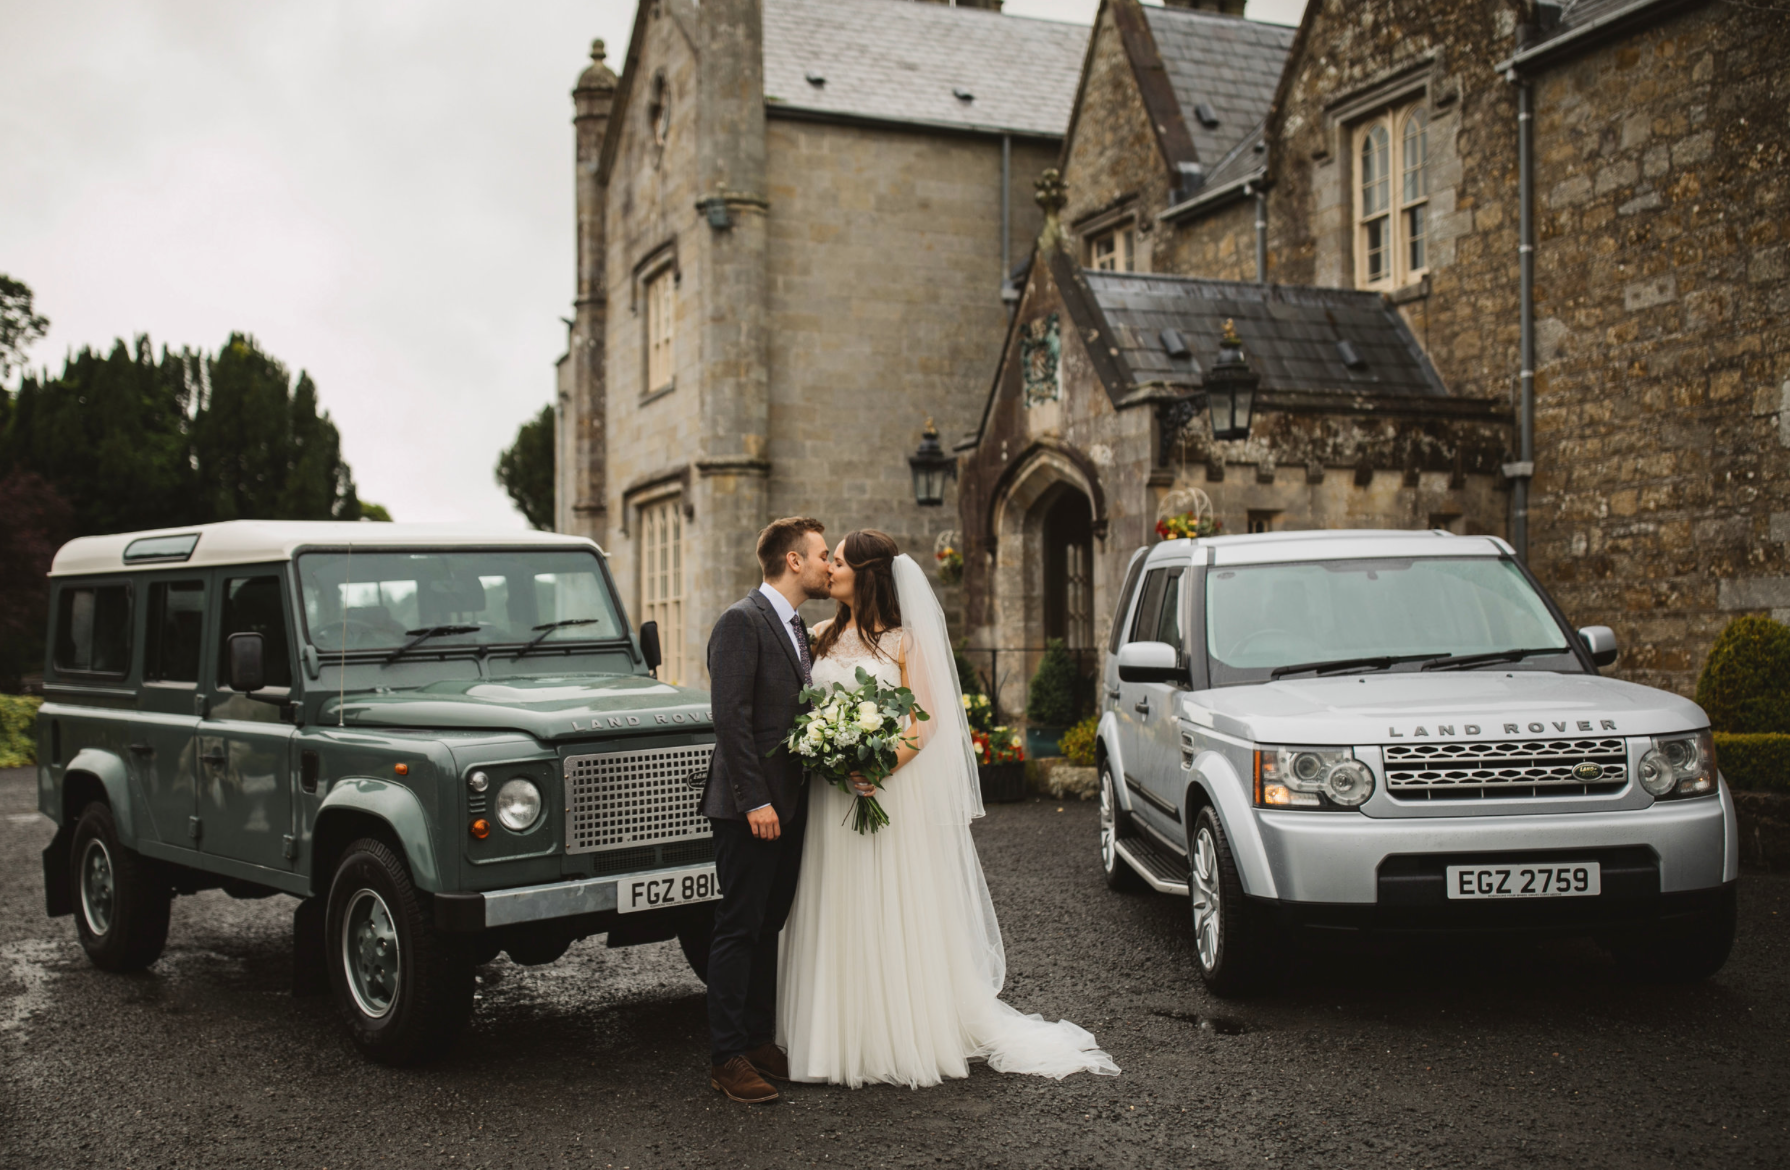 Travel in style - Well, it would be rude not to. Did we mention that we can help you and your party travel in style on your wedding day. With 5 packages to choose from we're confident you'll find the one that works for you.